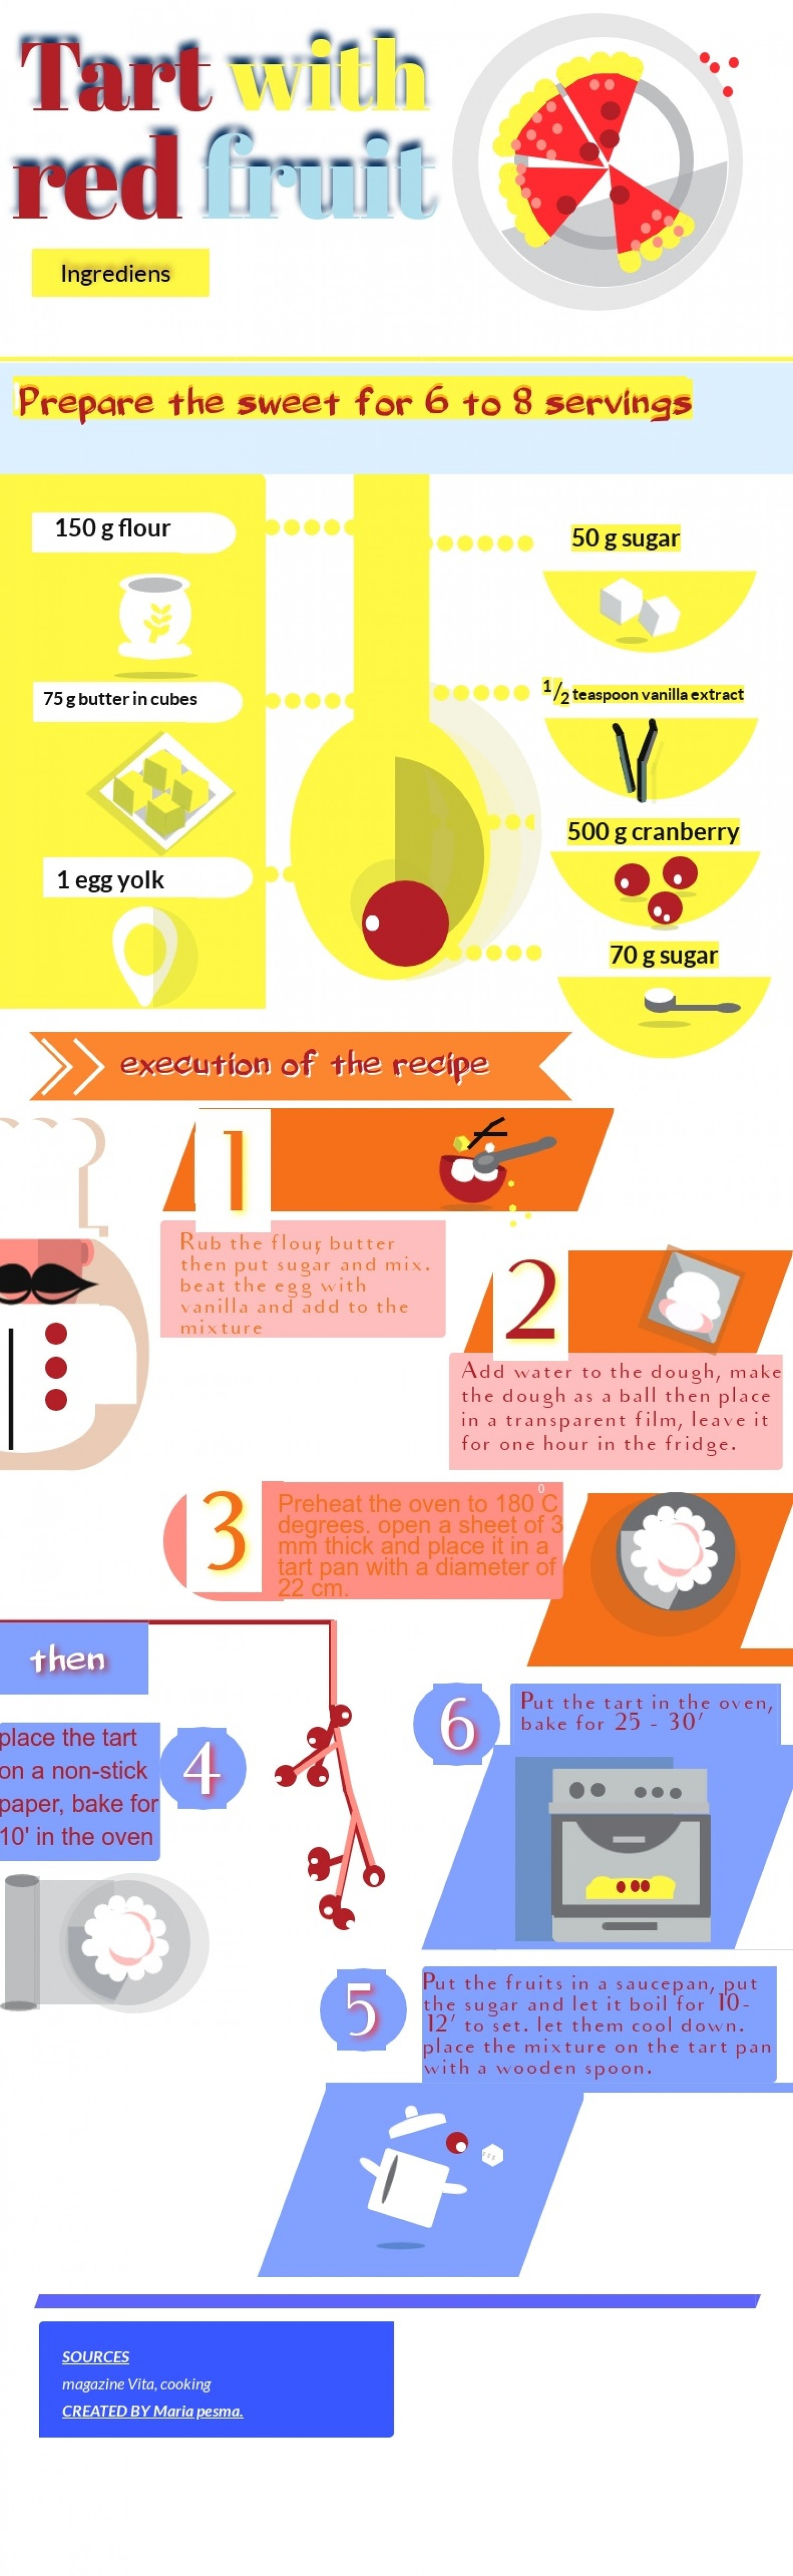 Cooking-tart with red fruit Infographic